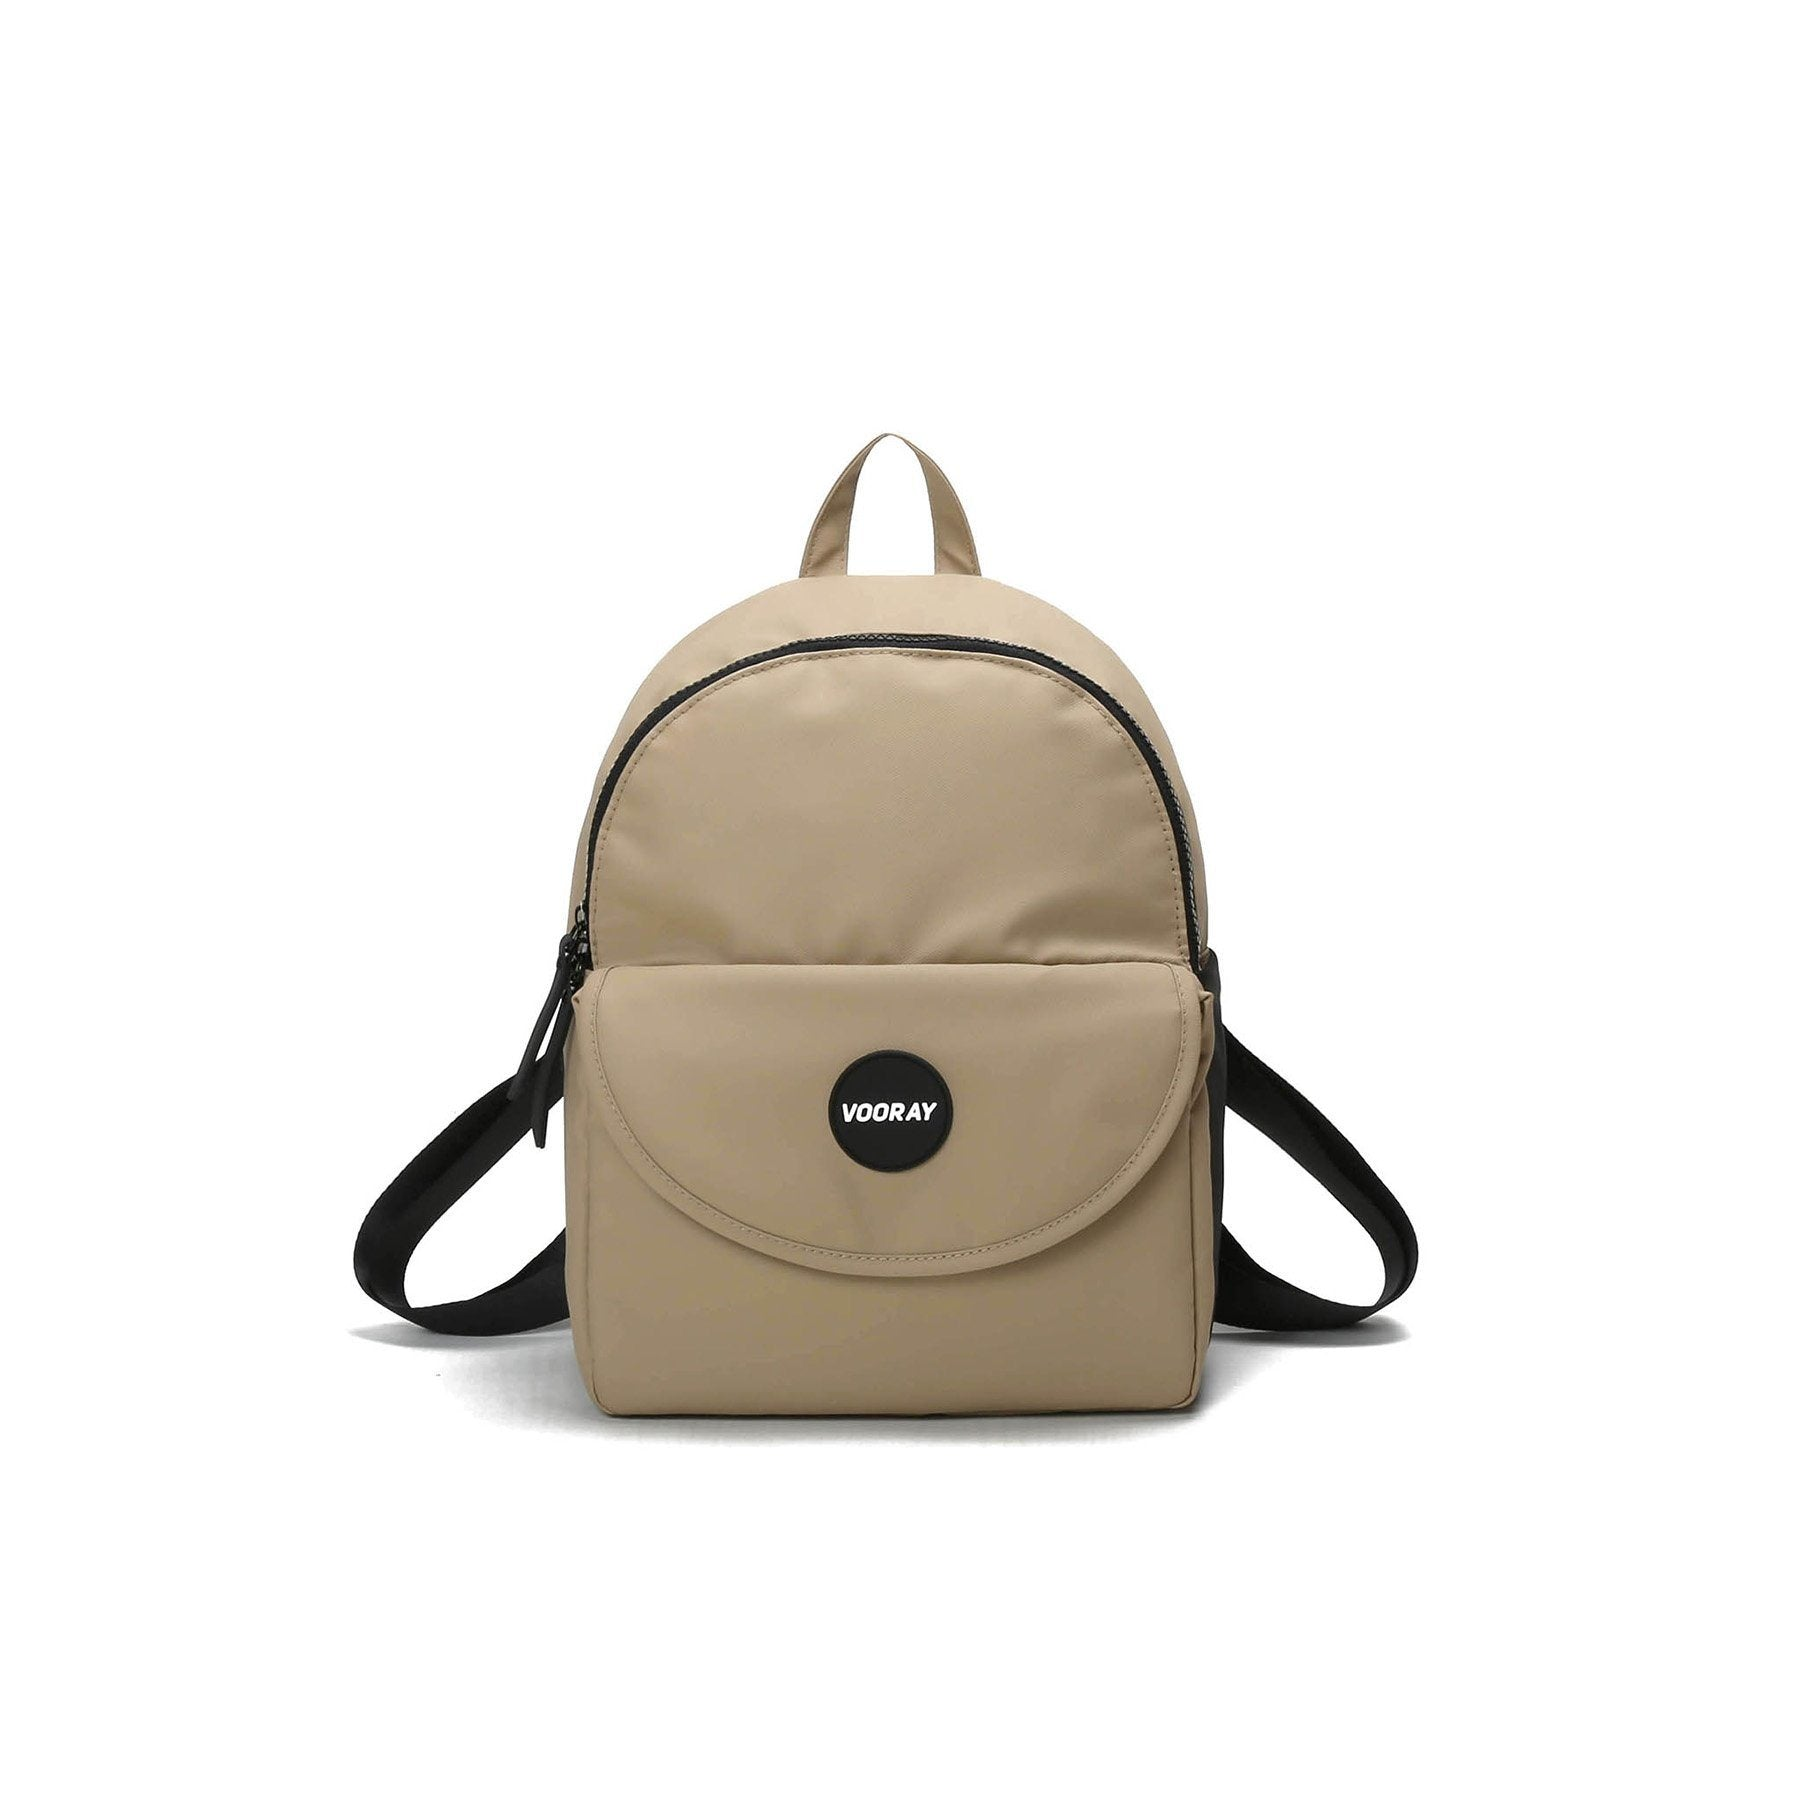 Vooray Lexi Backpack- Sonoran Tan